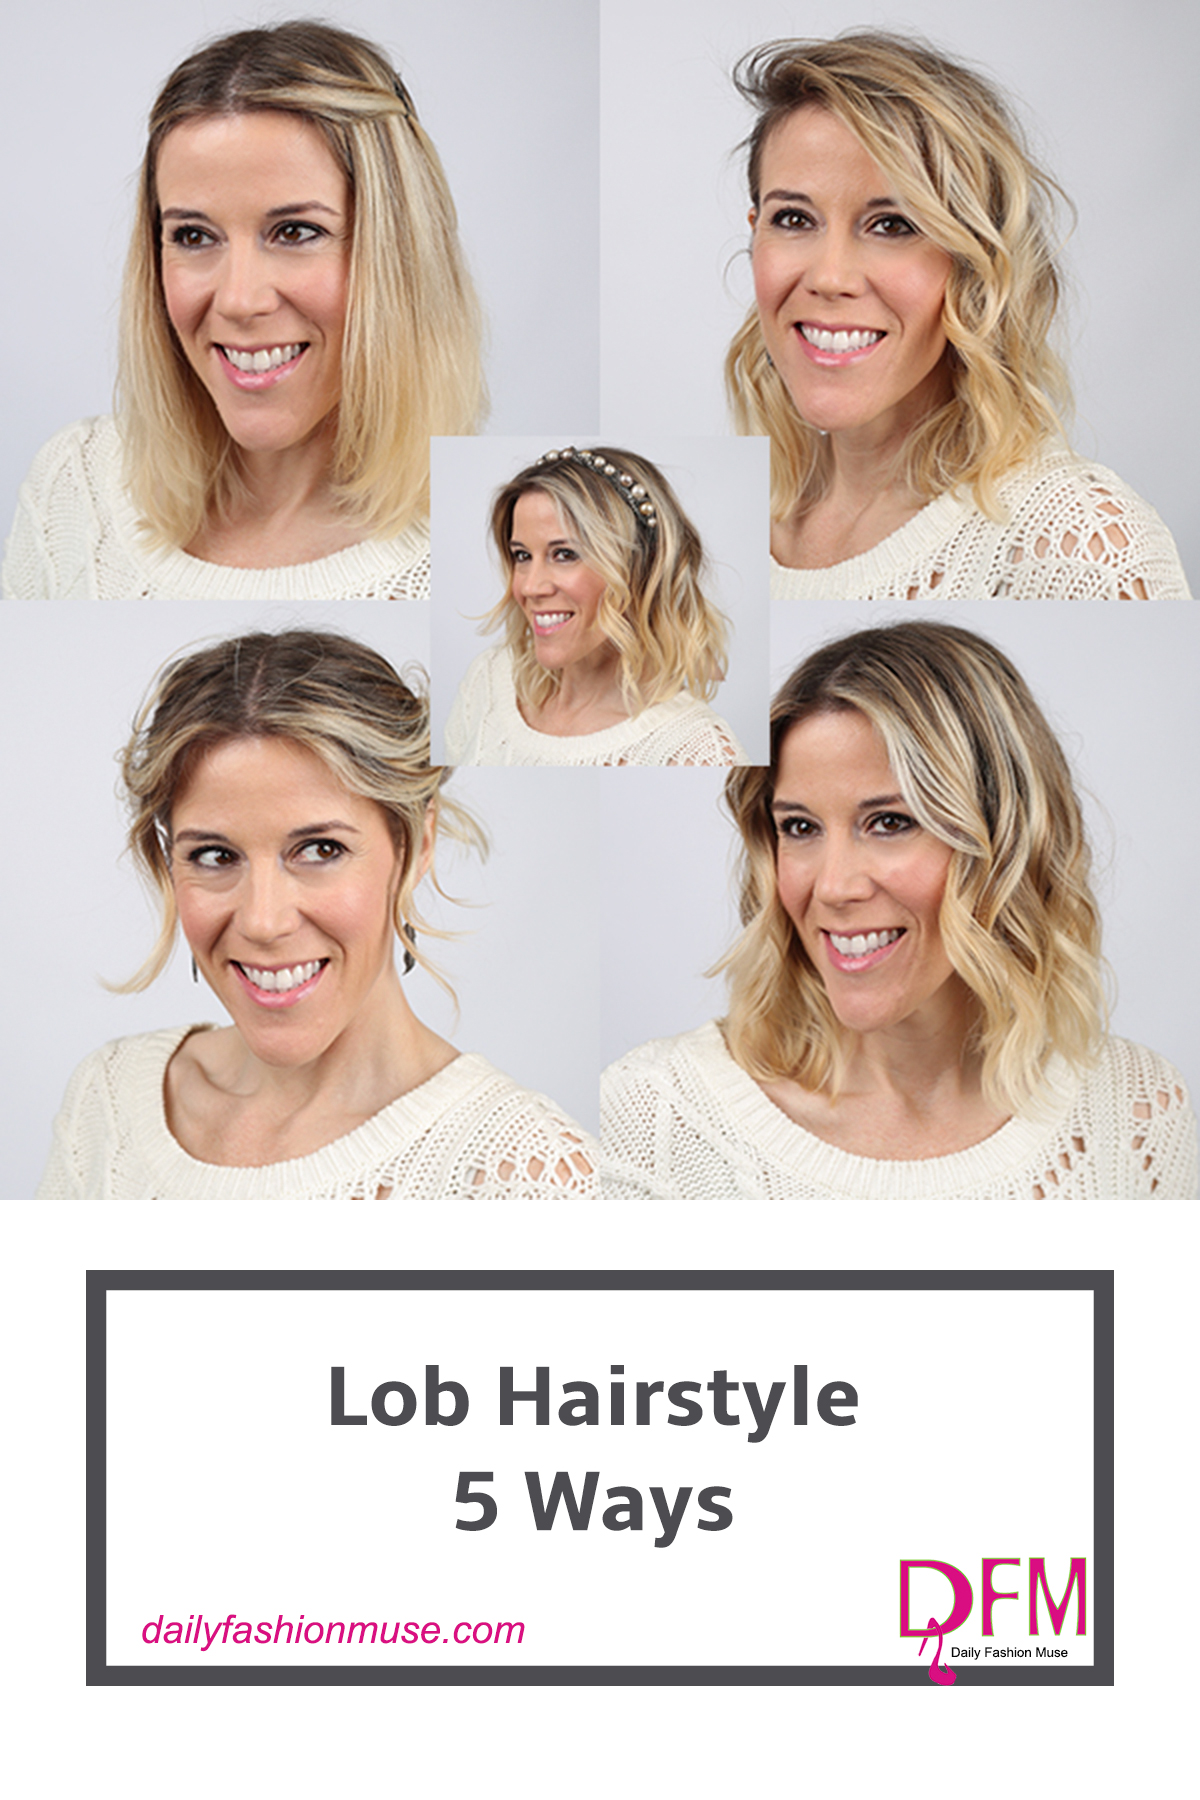 Lob hairstyles (better known as long bobs) are in high demand since many of succumbed to chopping off our locks this past year. Click to read about 5 ways that I like to style my lob.